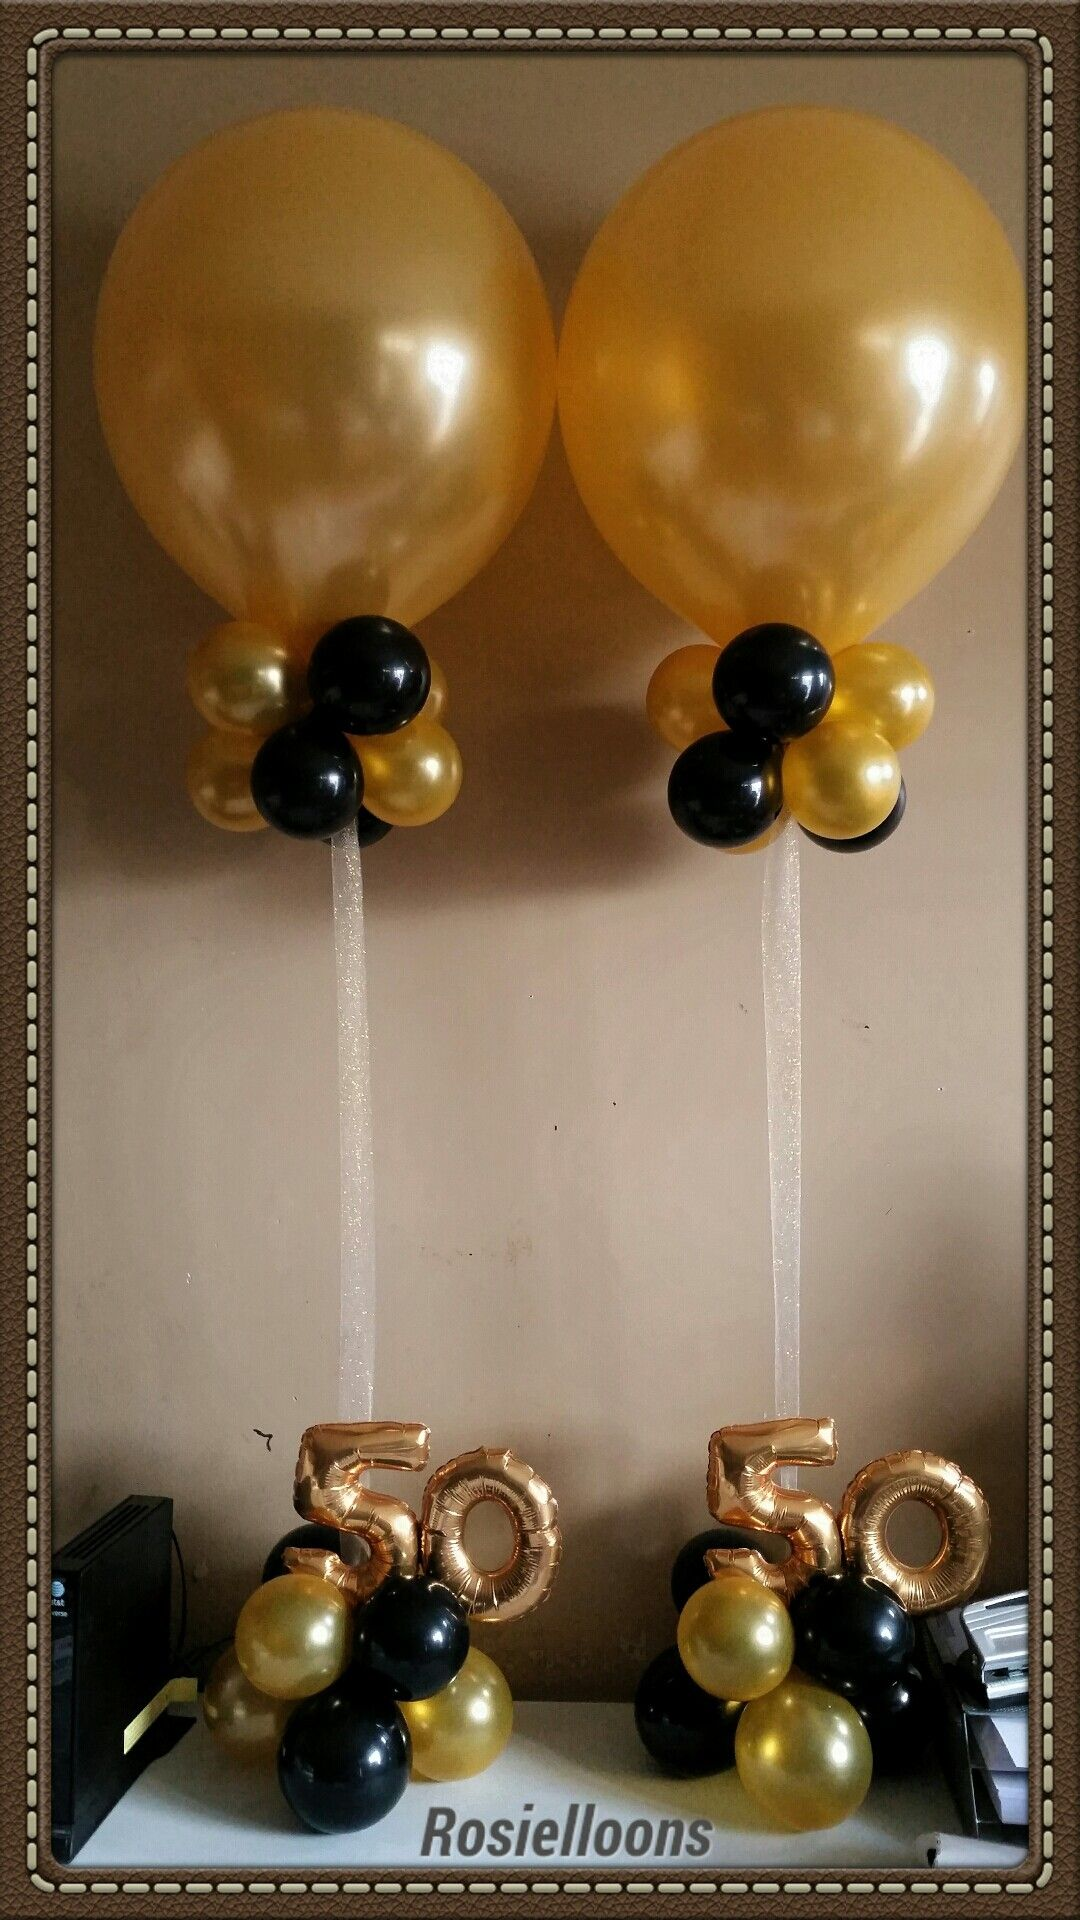 Pin by Rosielloons on Balloon centerpieces in 2020 | 50th ...